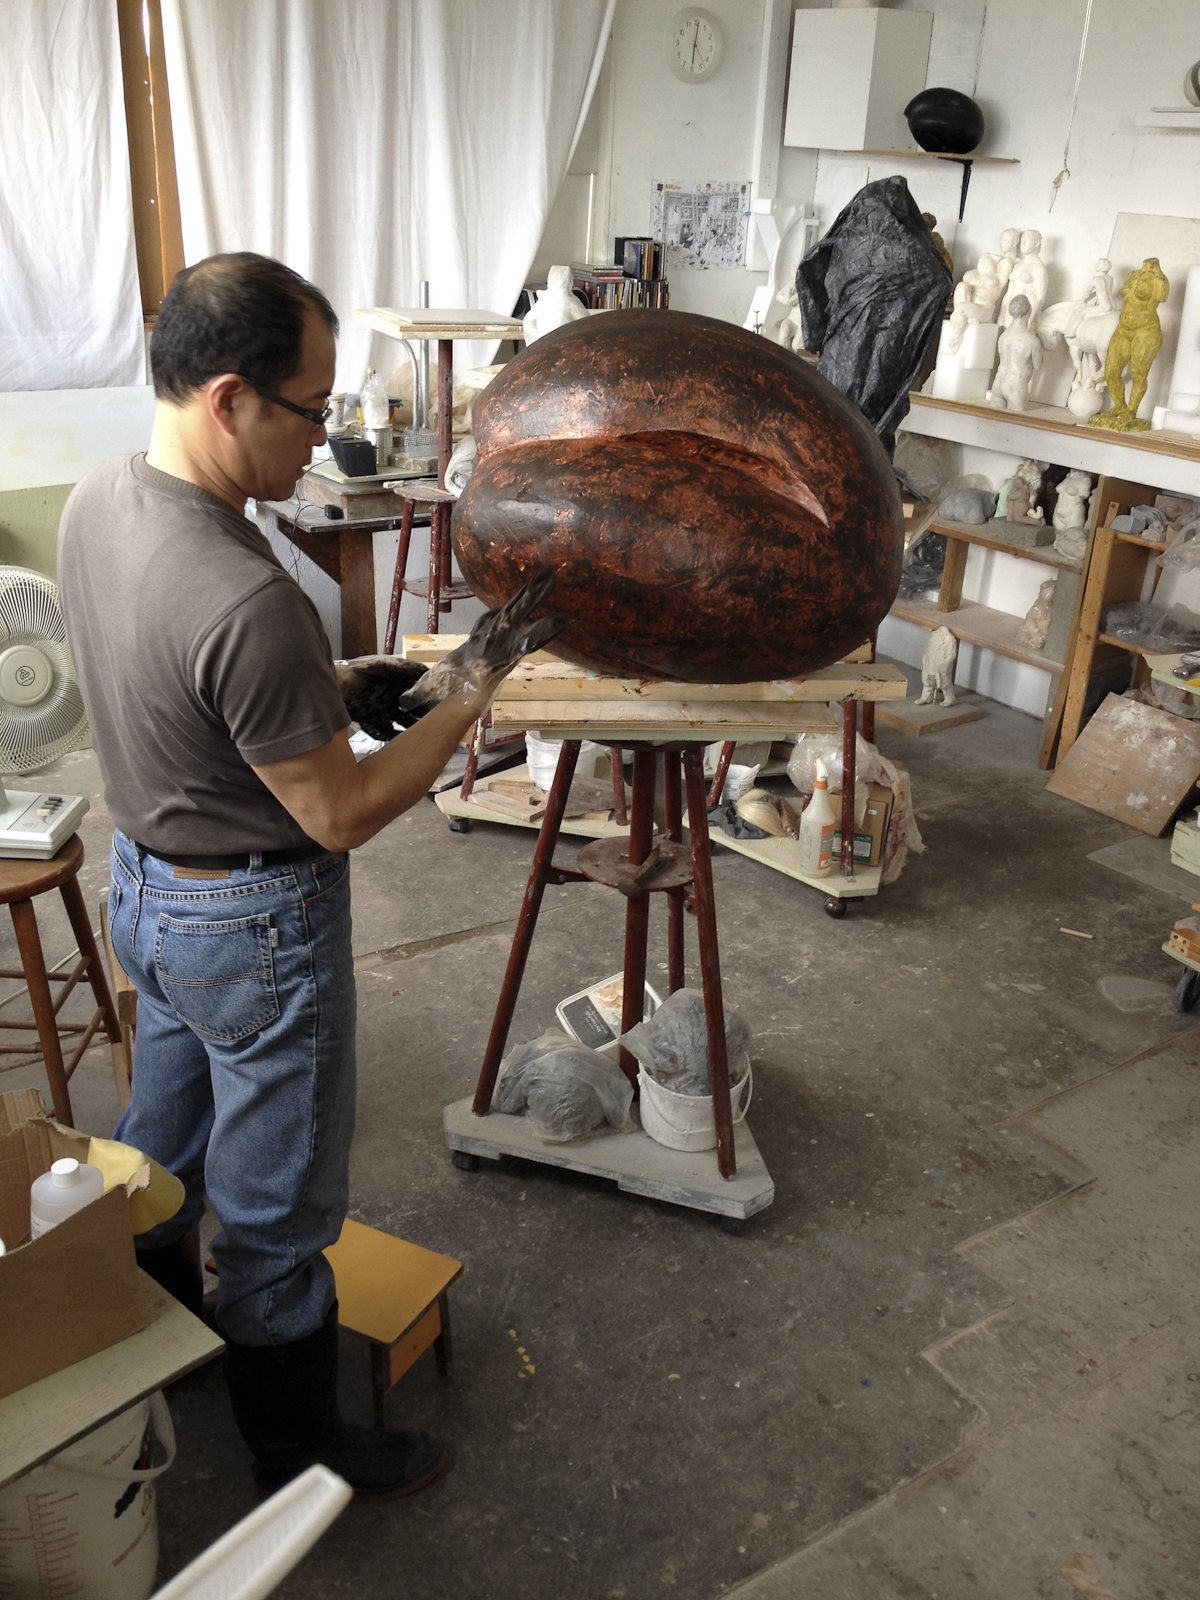 sculptor at work in studio on abstract sculpture